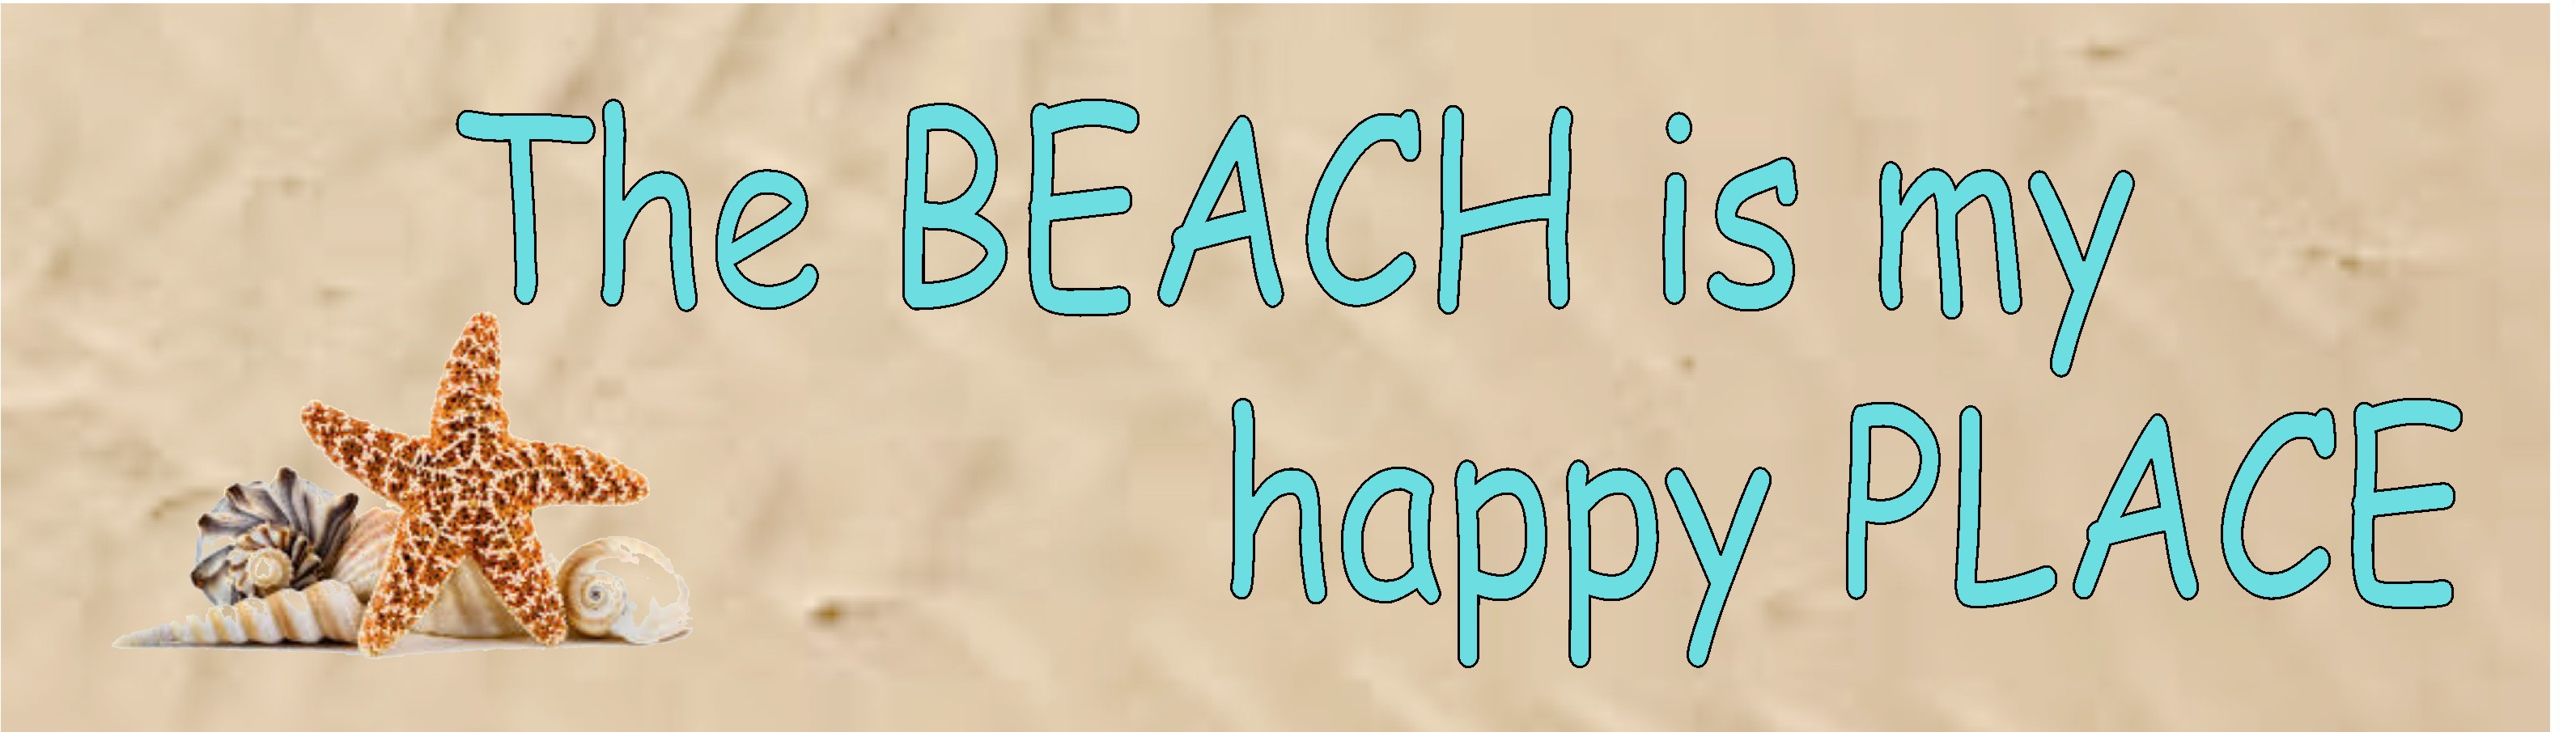 "THE BEACH IS MY HAPPY PLACE 10.5"" X 3"" WOODEN BLOCK SIGN"